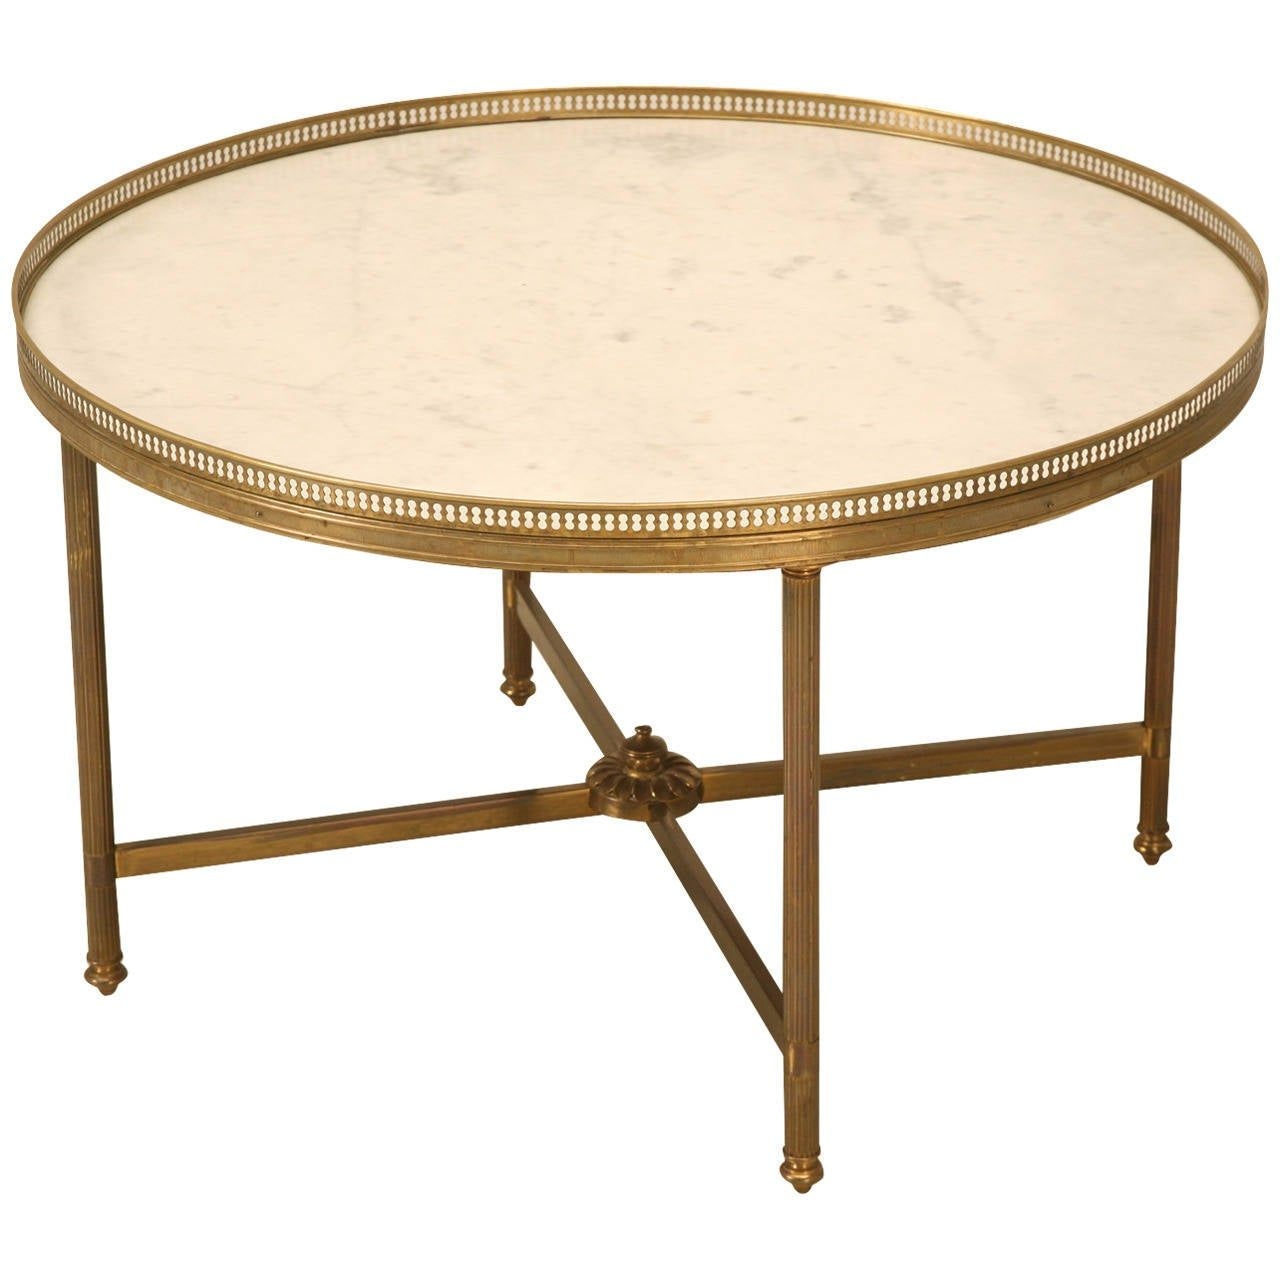 Park Art My WordPress Blog_Antique Brass Coffee Table With Marble Top